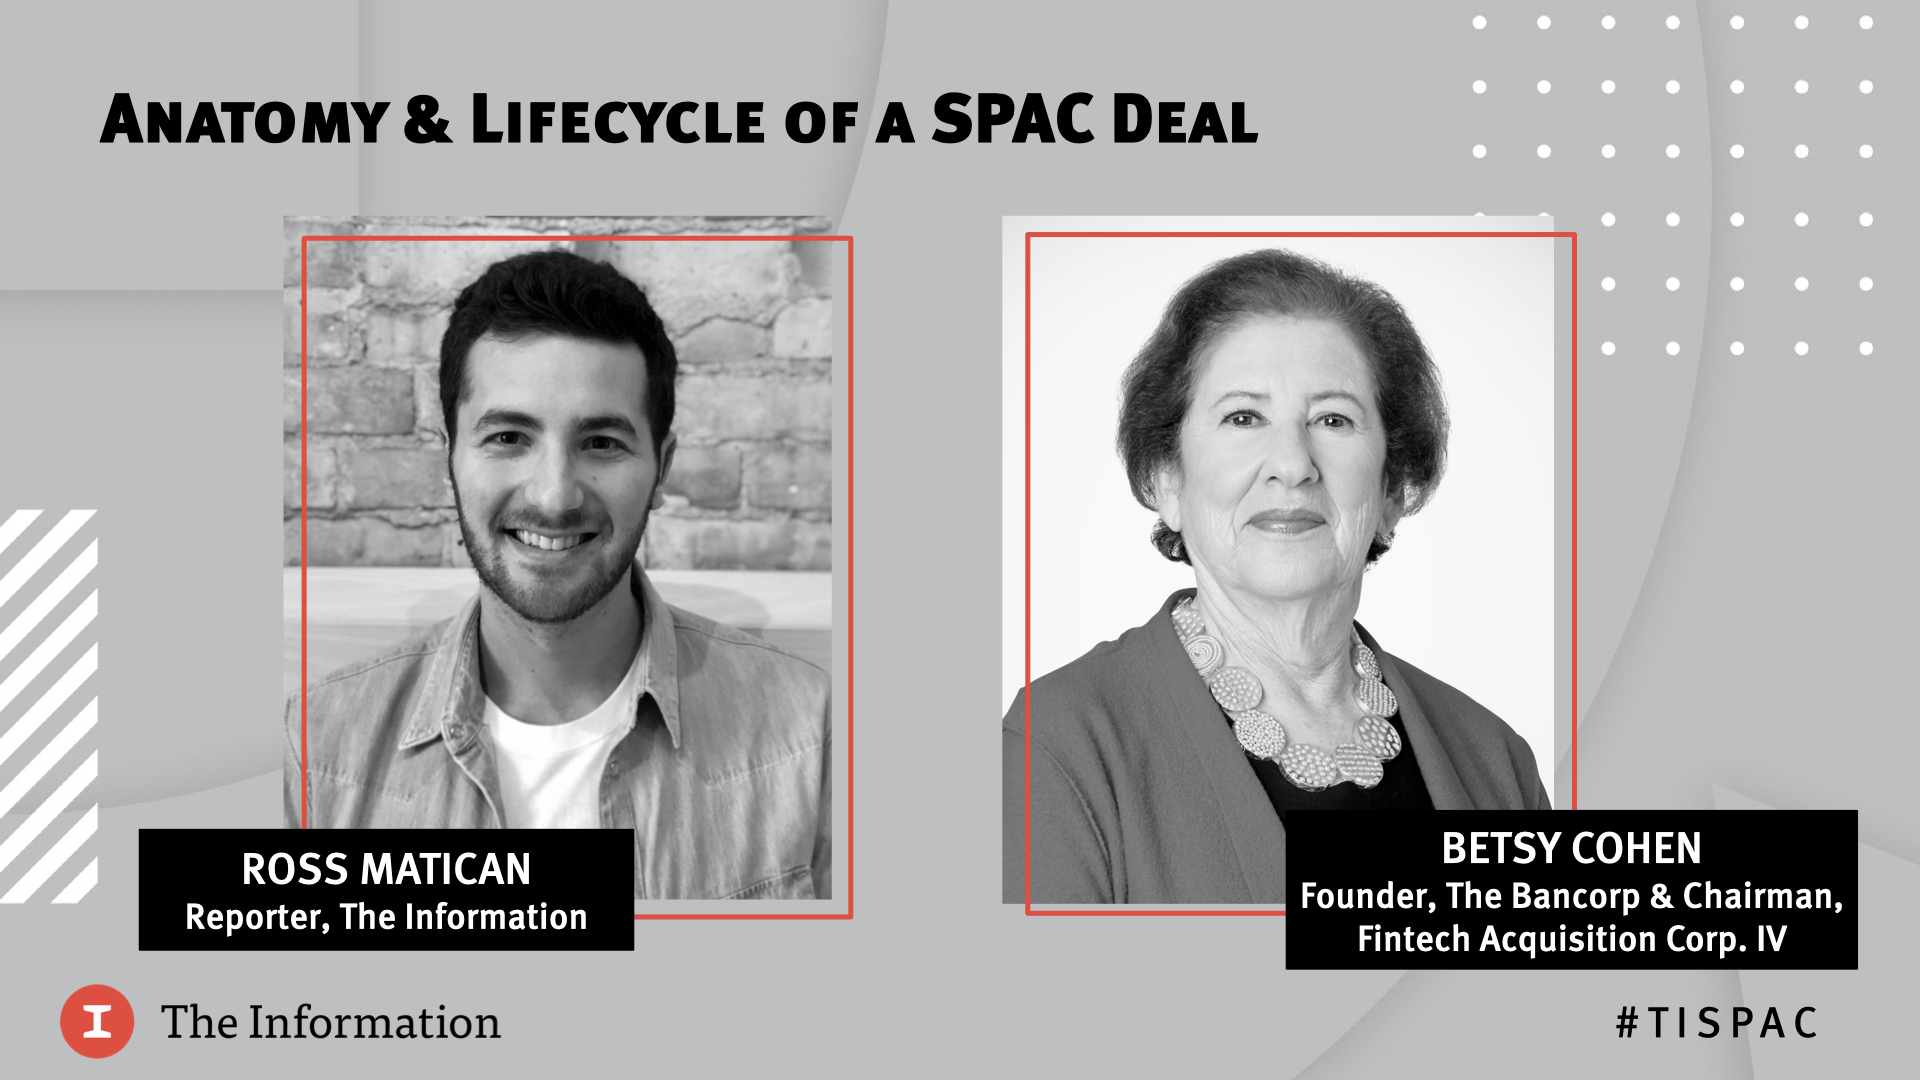 SPAC 2020 - Anatomy and Lifecycle of a SPAC Deal